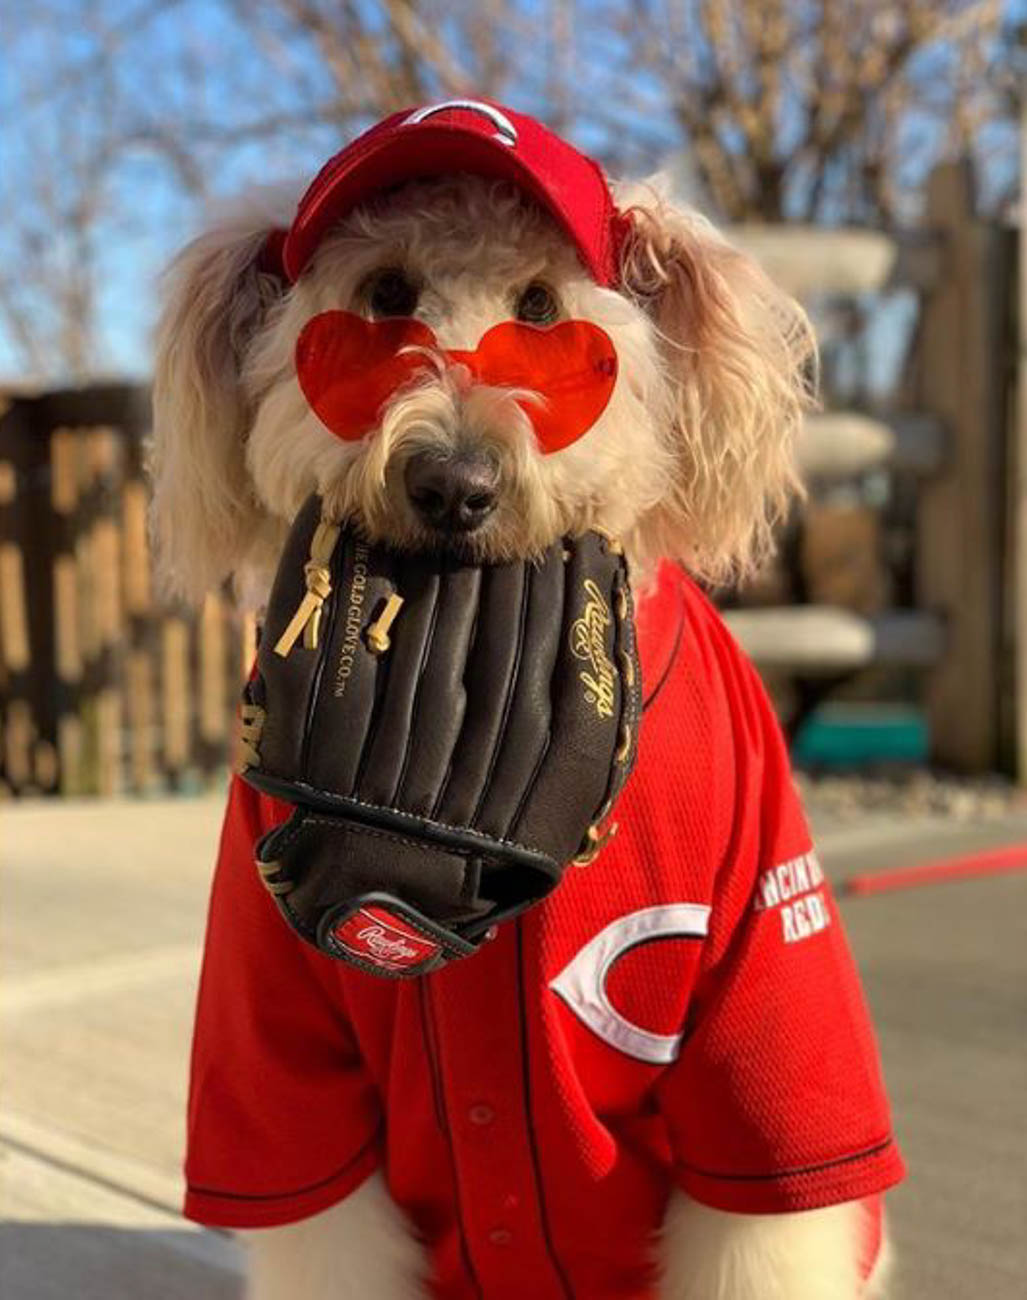 Cheering on the Reds despite a delayed Opening Day / Image courtesy of Instagram user @many_adventures_of_annie_ // Published: 4.1.20